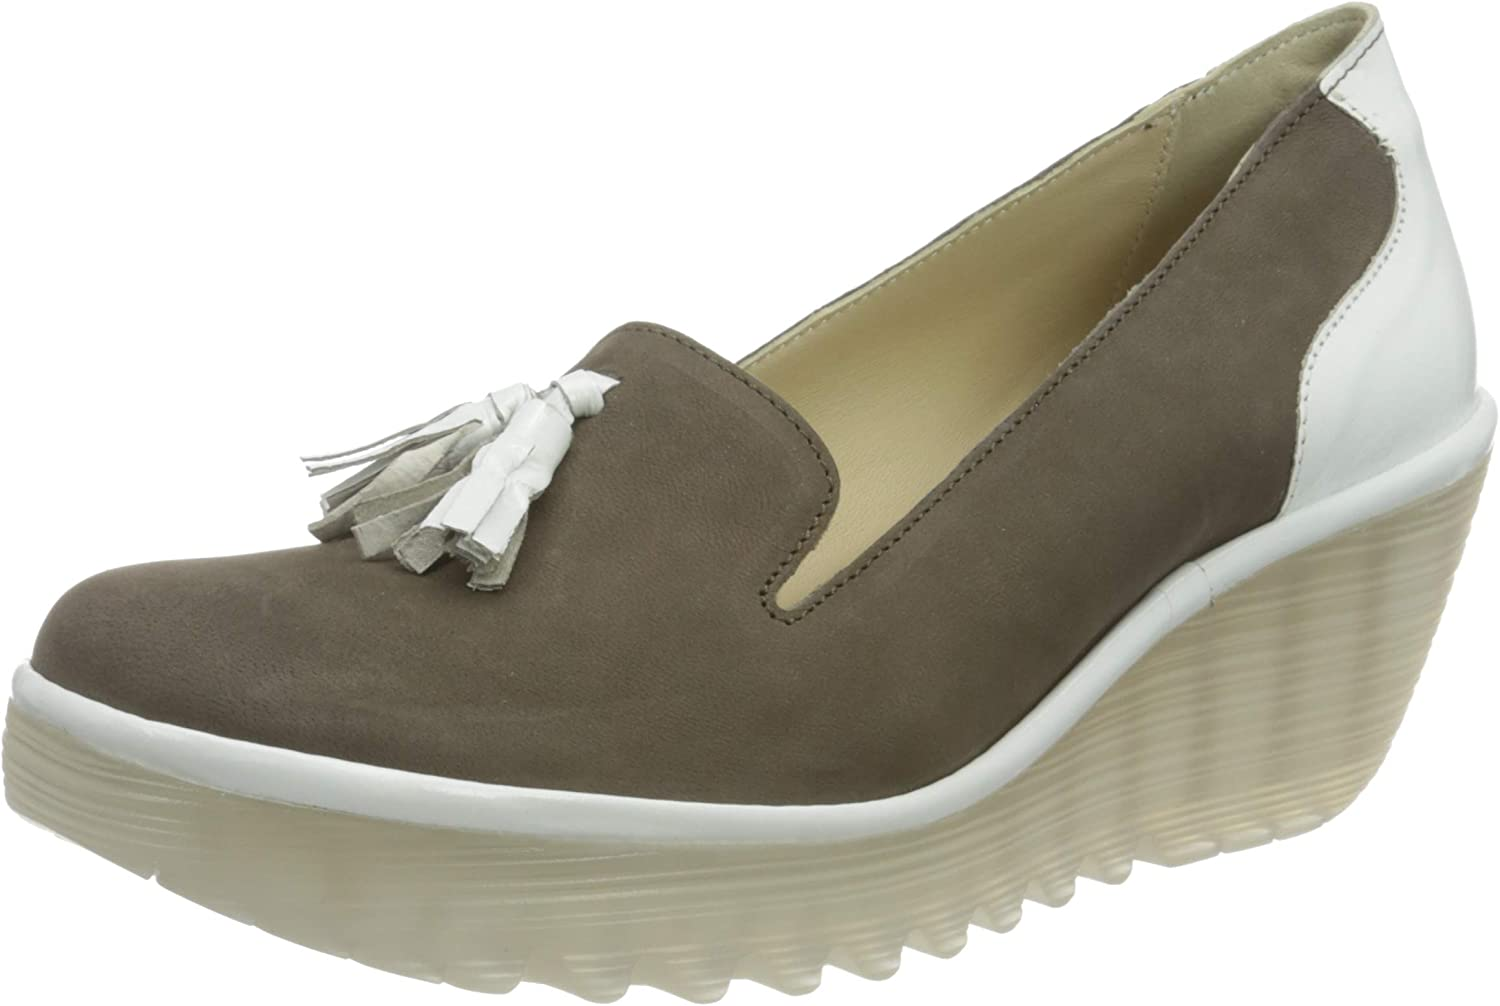 FLY Online limited product Outlet sale feature London Women's Loafer